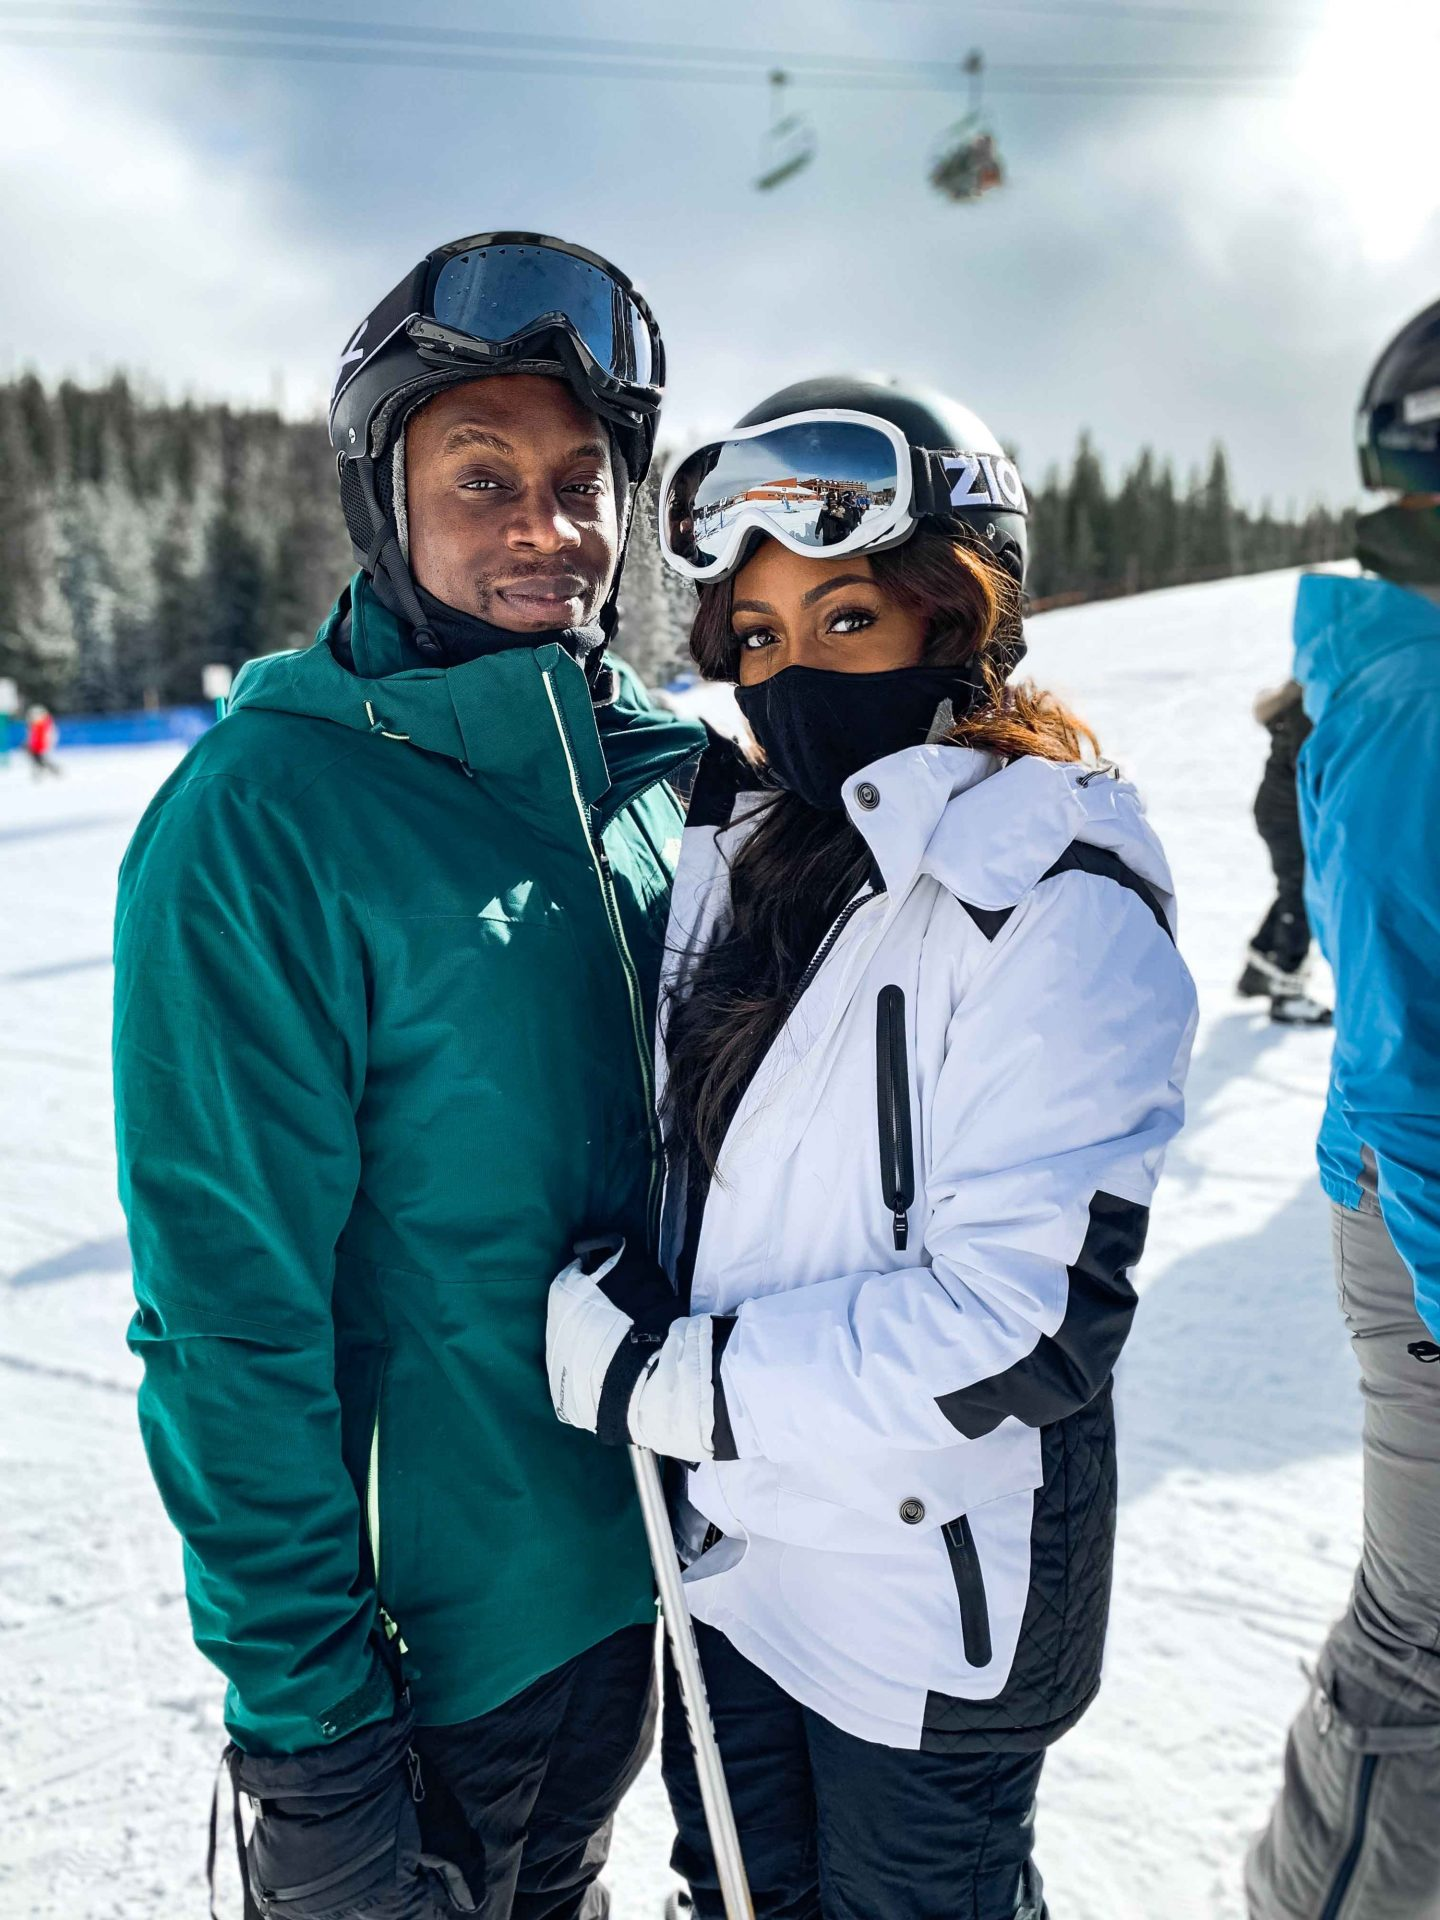 All You Need To Plan Your Trip To Breckenridge Colorado | Ski Trip Packing Guide